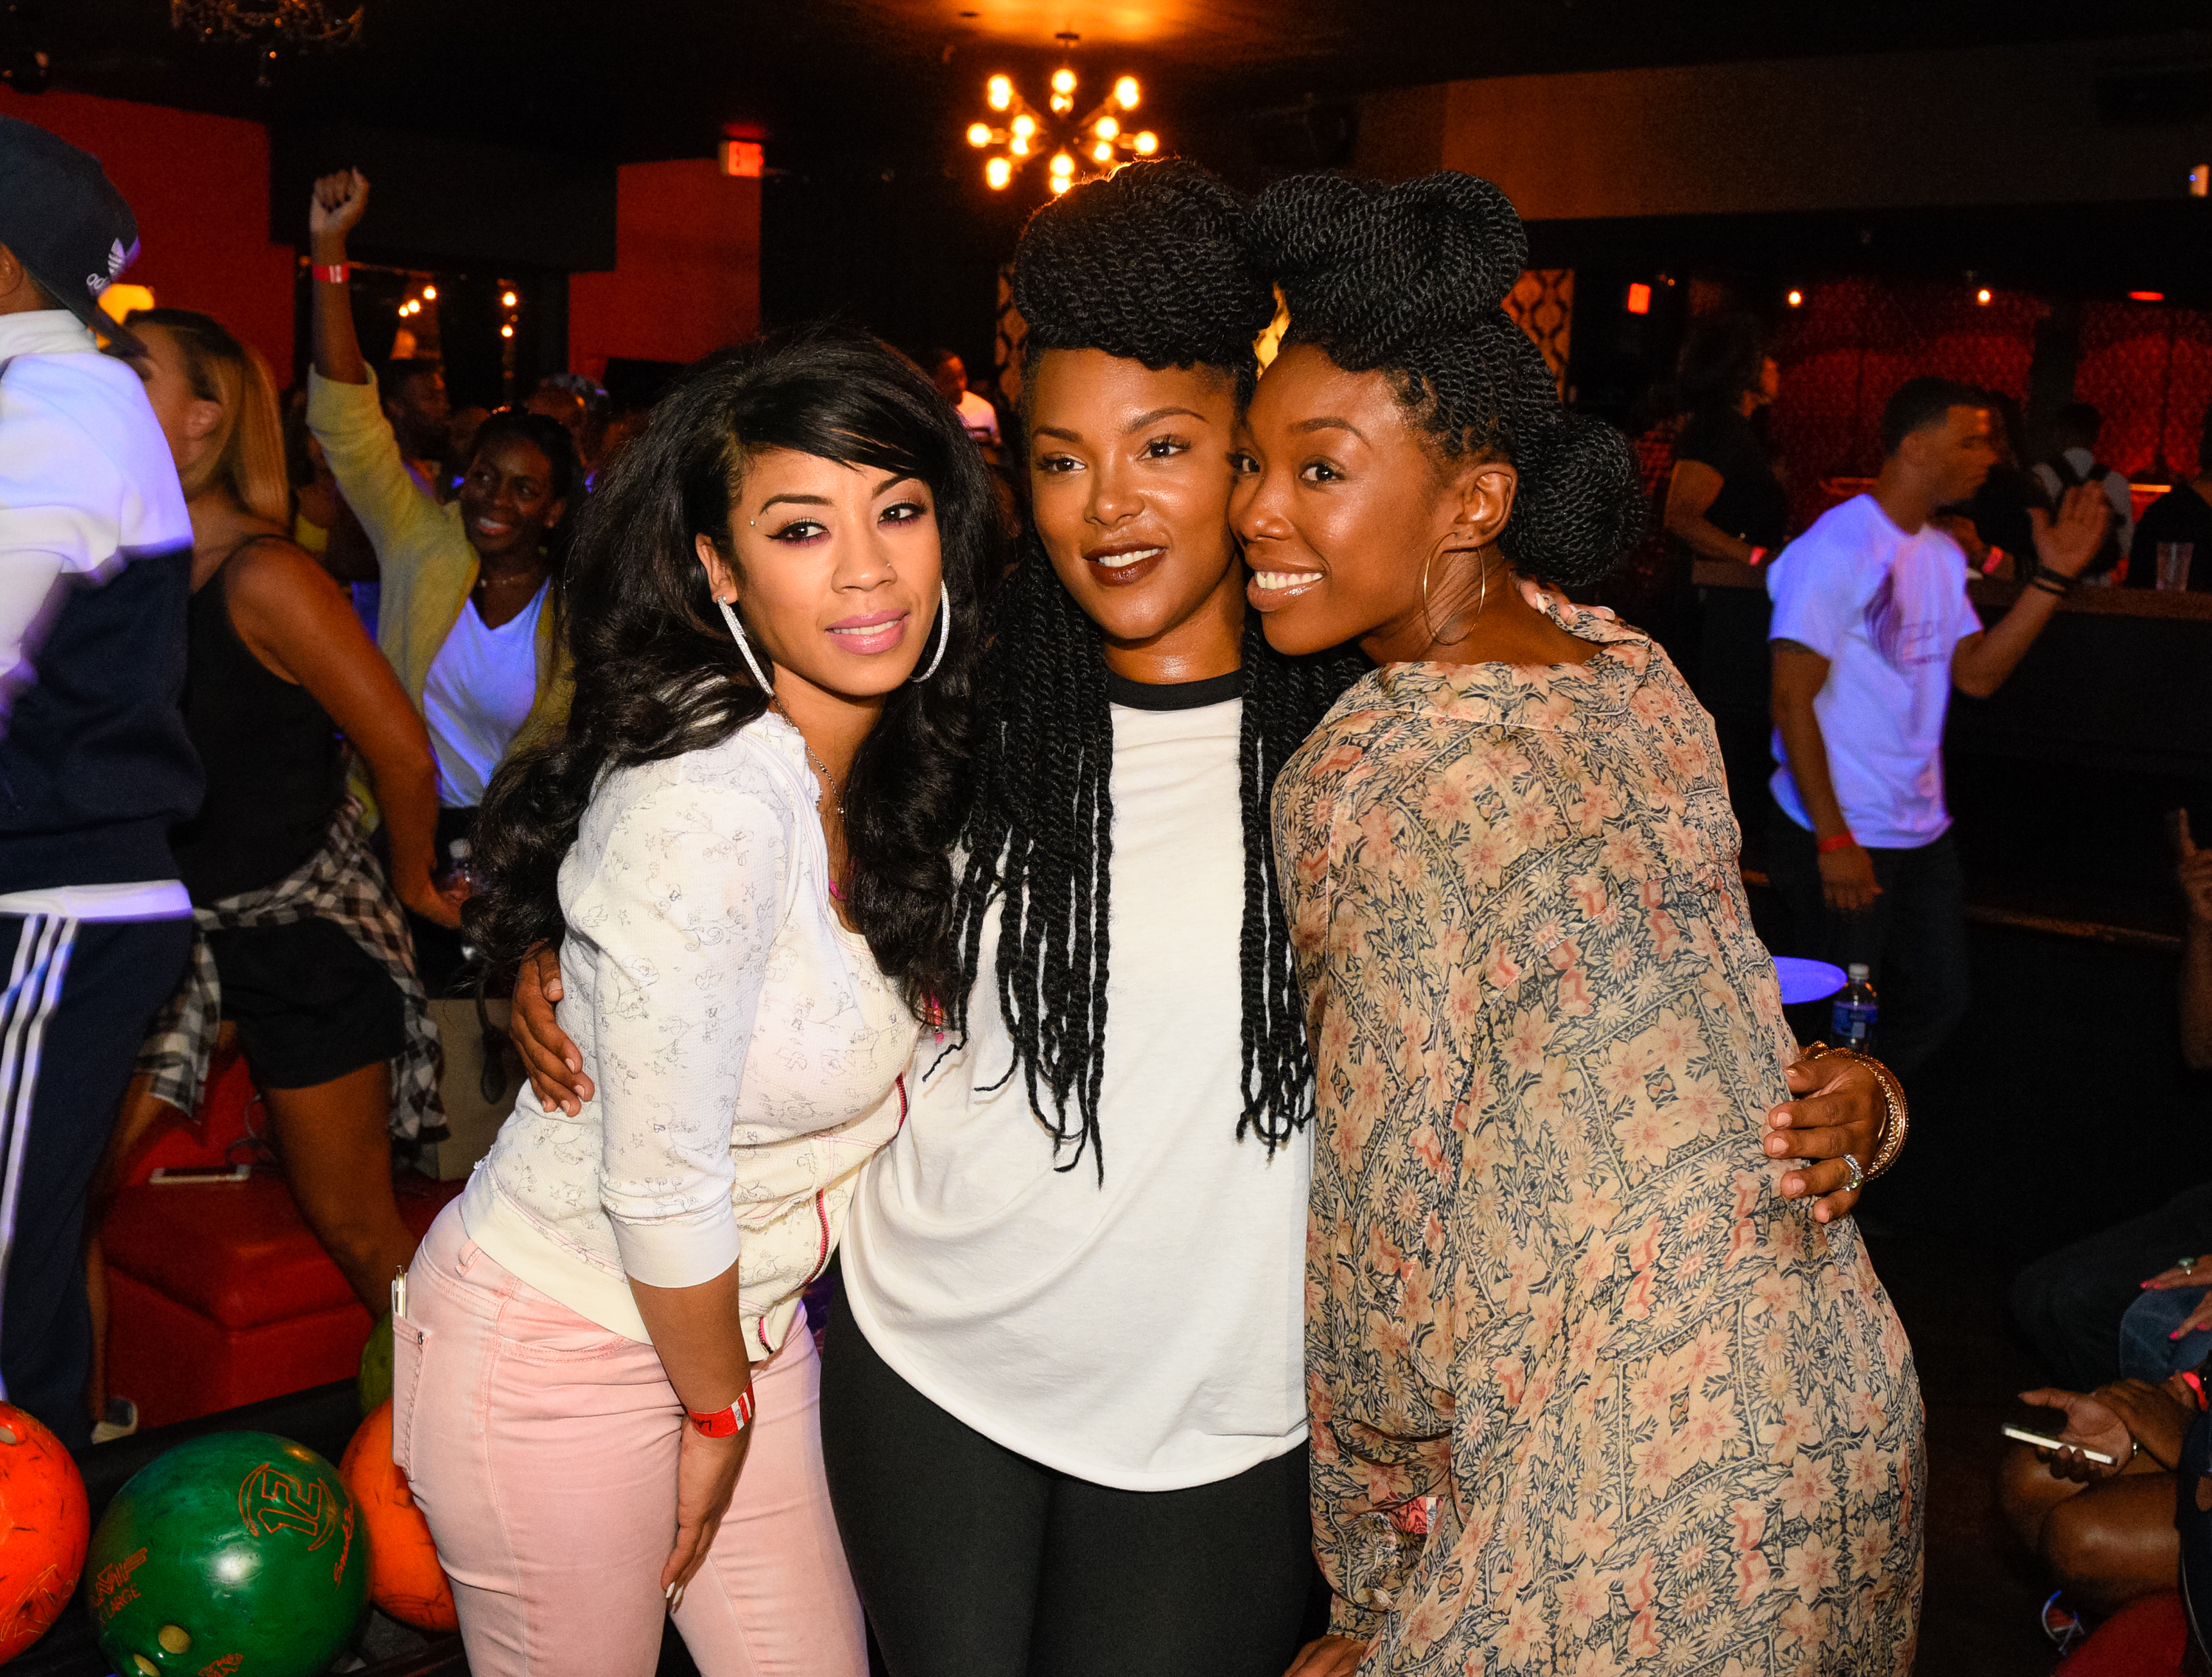 Brandy, Keyshia Cole, Terrance J & More Bowl At Celebrity Charity Event!